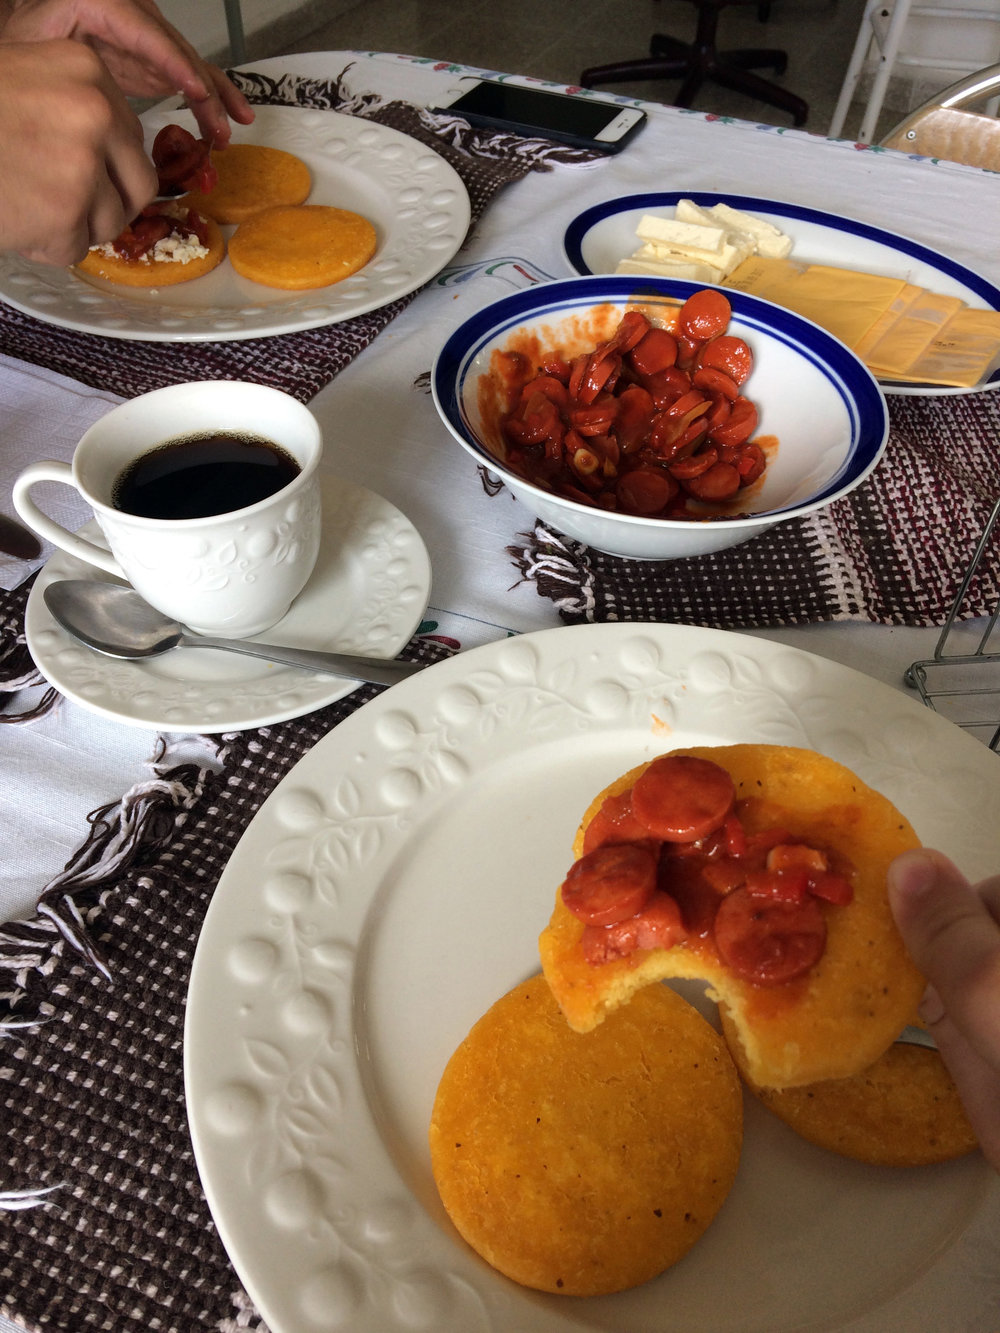 Every few days, Angel would make us  arepas,  a traditional breakfast from his home country of Venezuela.